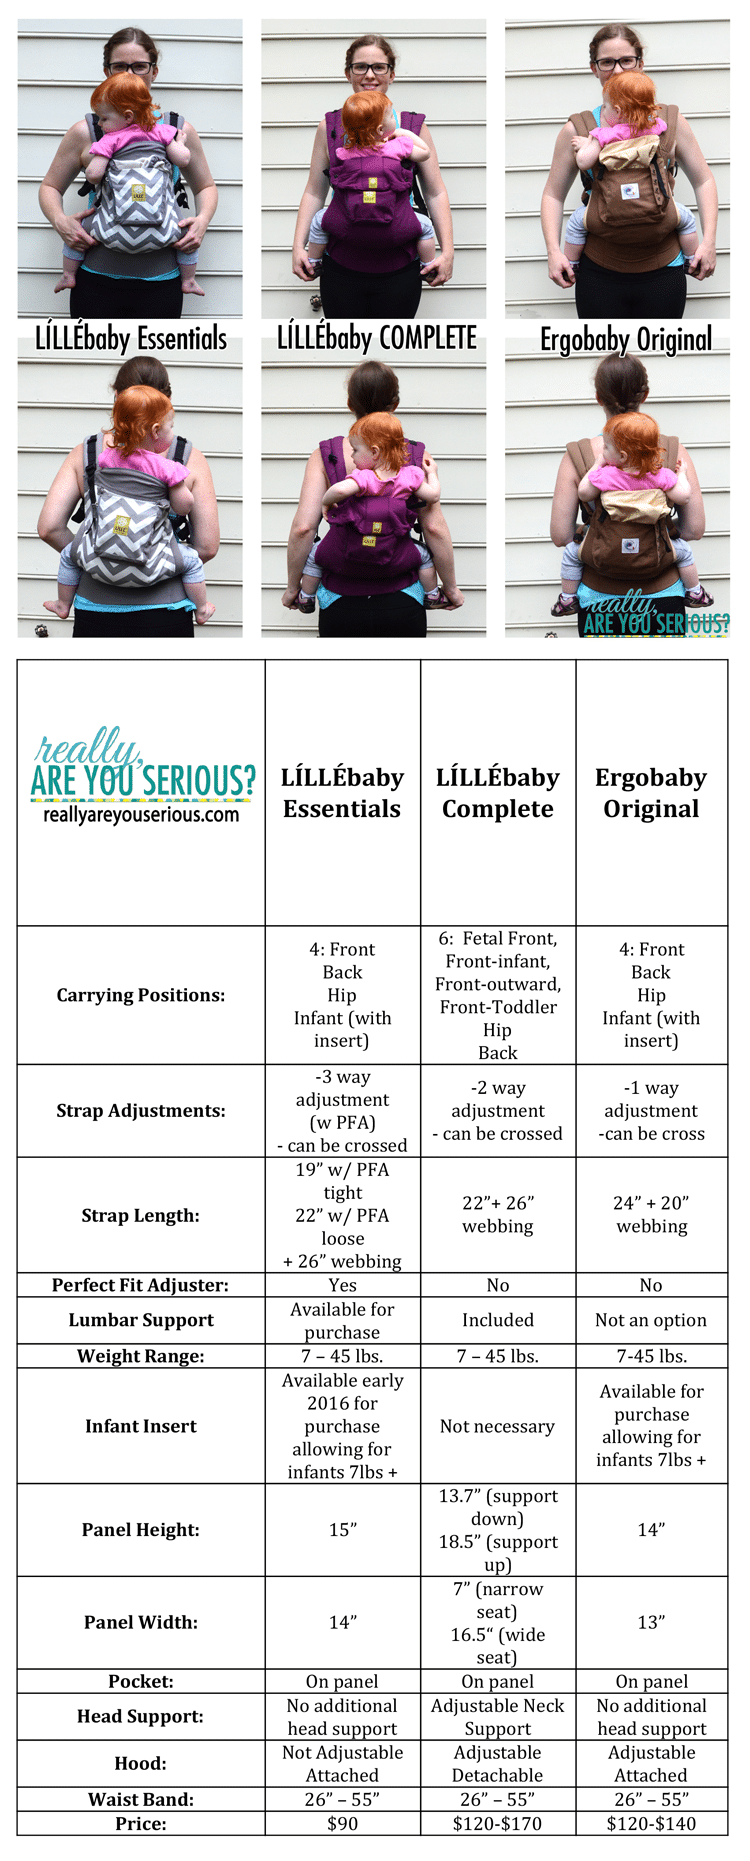 Comparison picture + chart essentials complete ergo